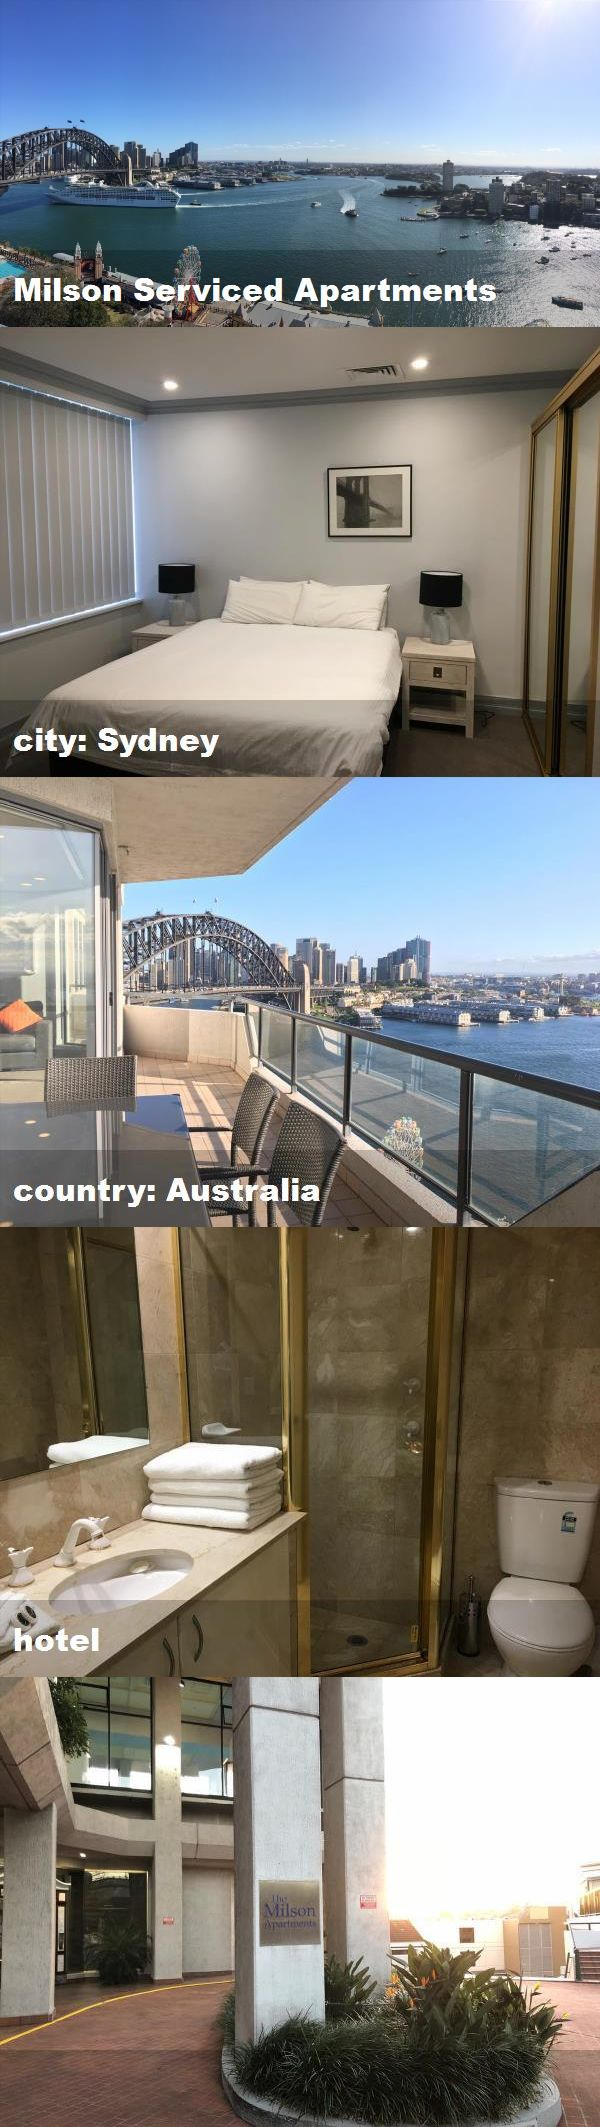 Milson Serviced Apartments, city: Sydney, country ...